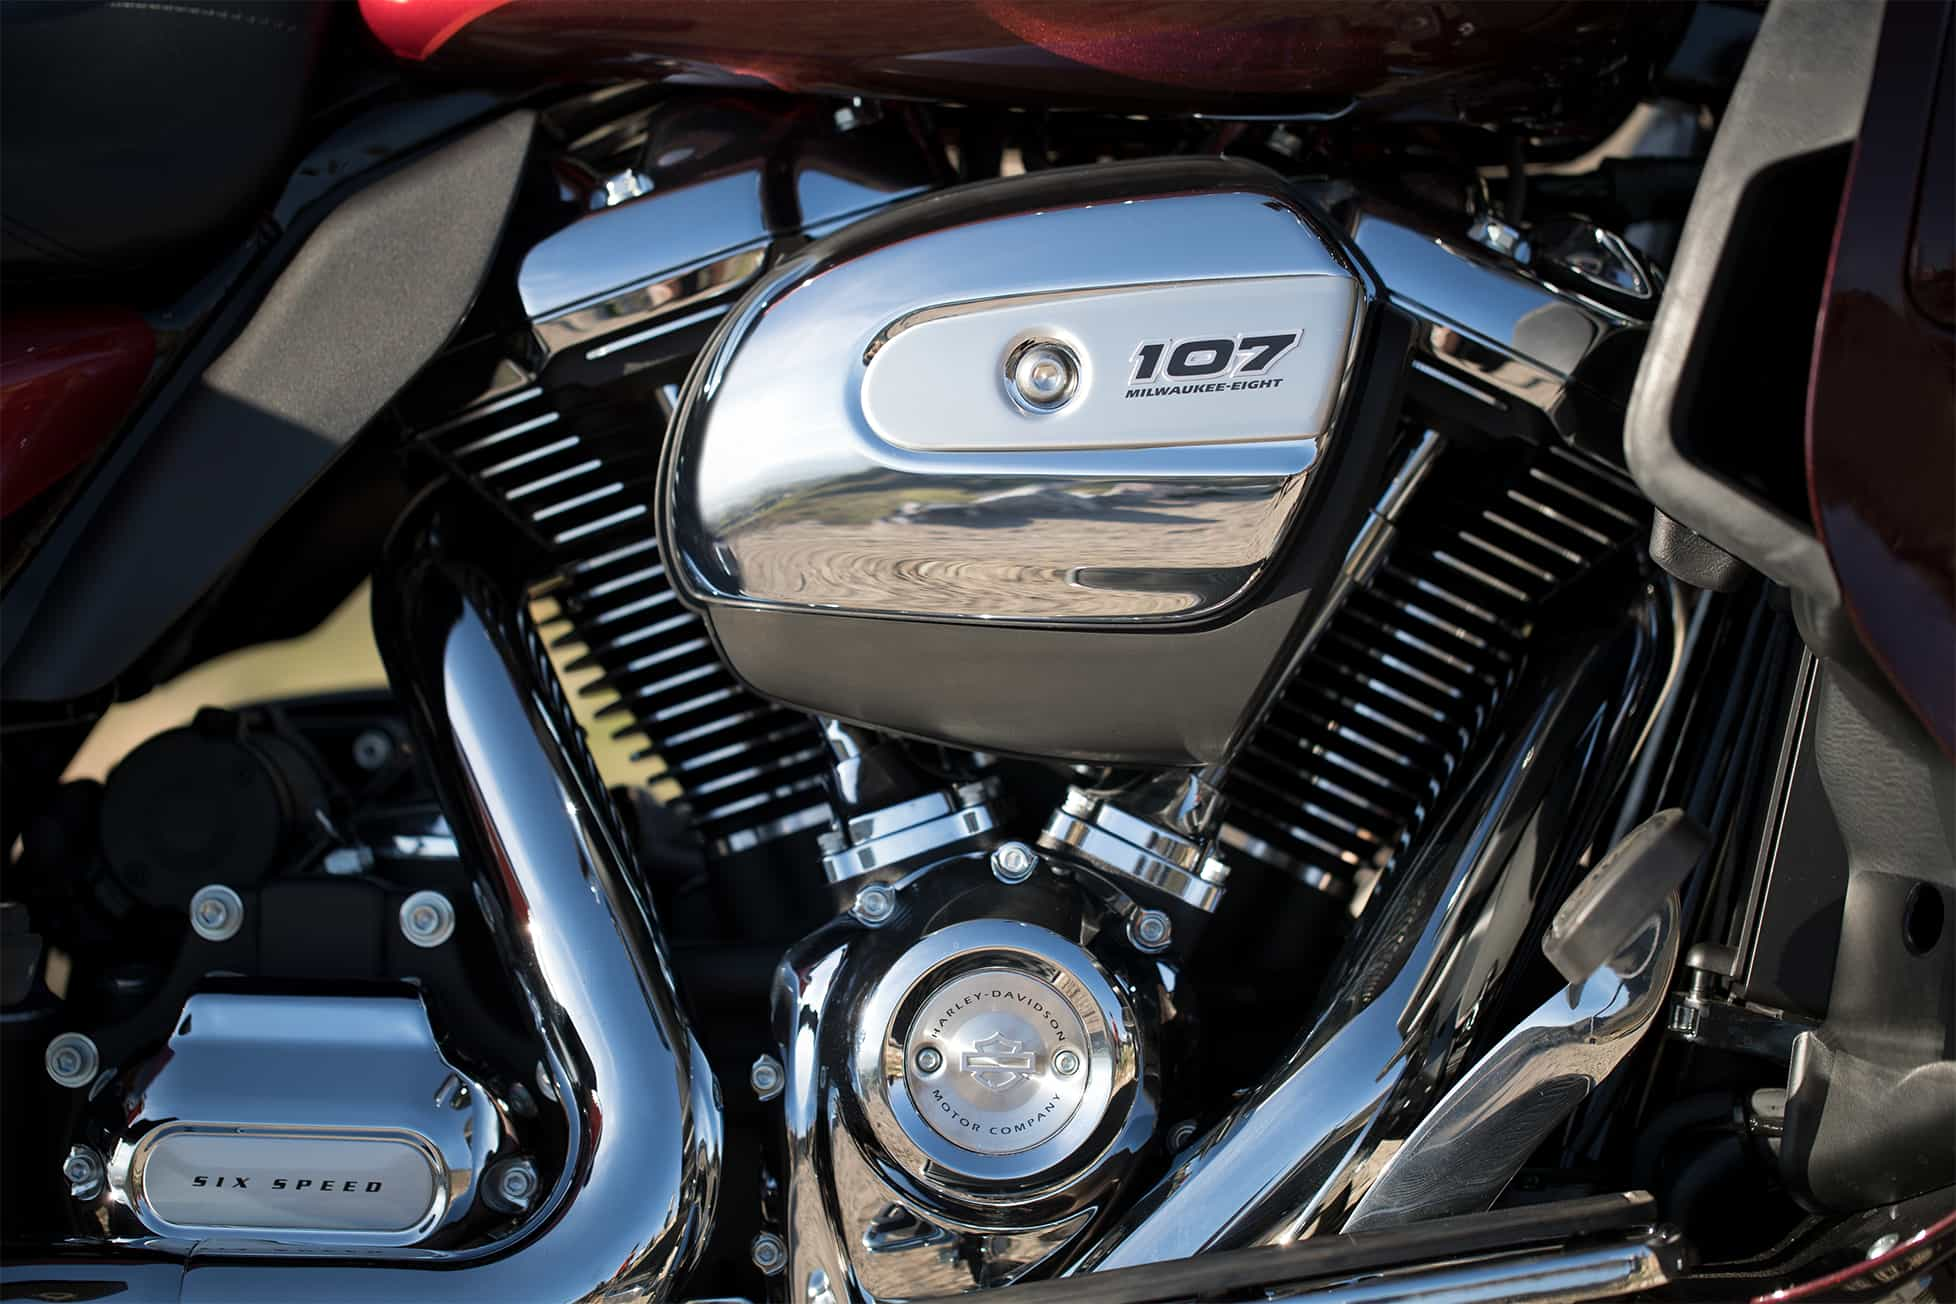 2018 Harley-Davidson Ultra-Limited Motorcycle UAE's Prices ...